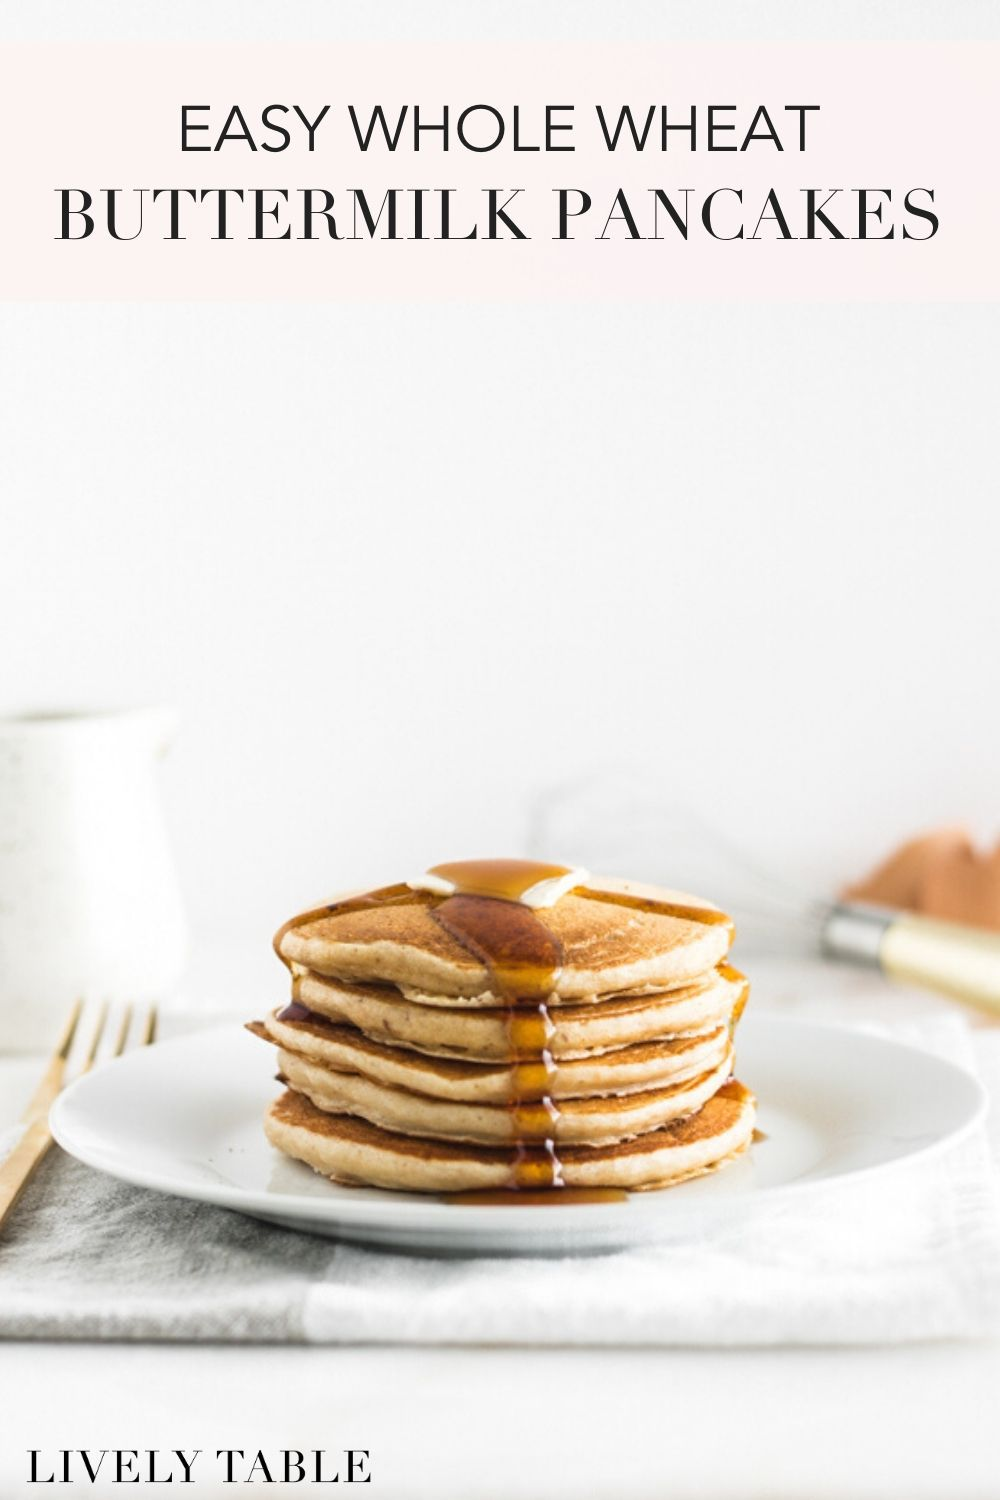 Healthy Whole Wheat Buttermilk Pancakes Recipe In 2020 Breakfast Brunch Recipes Buttermilk Pancakes Recipes